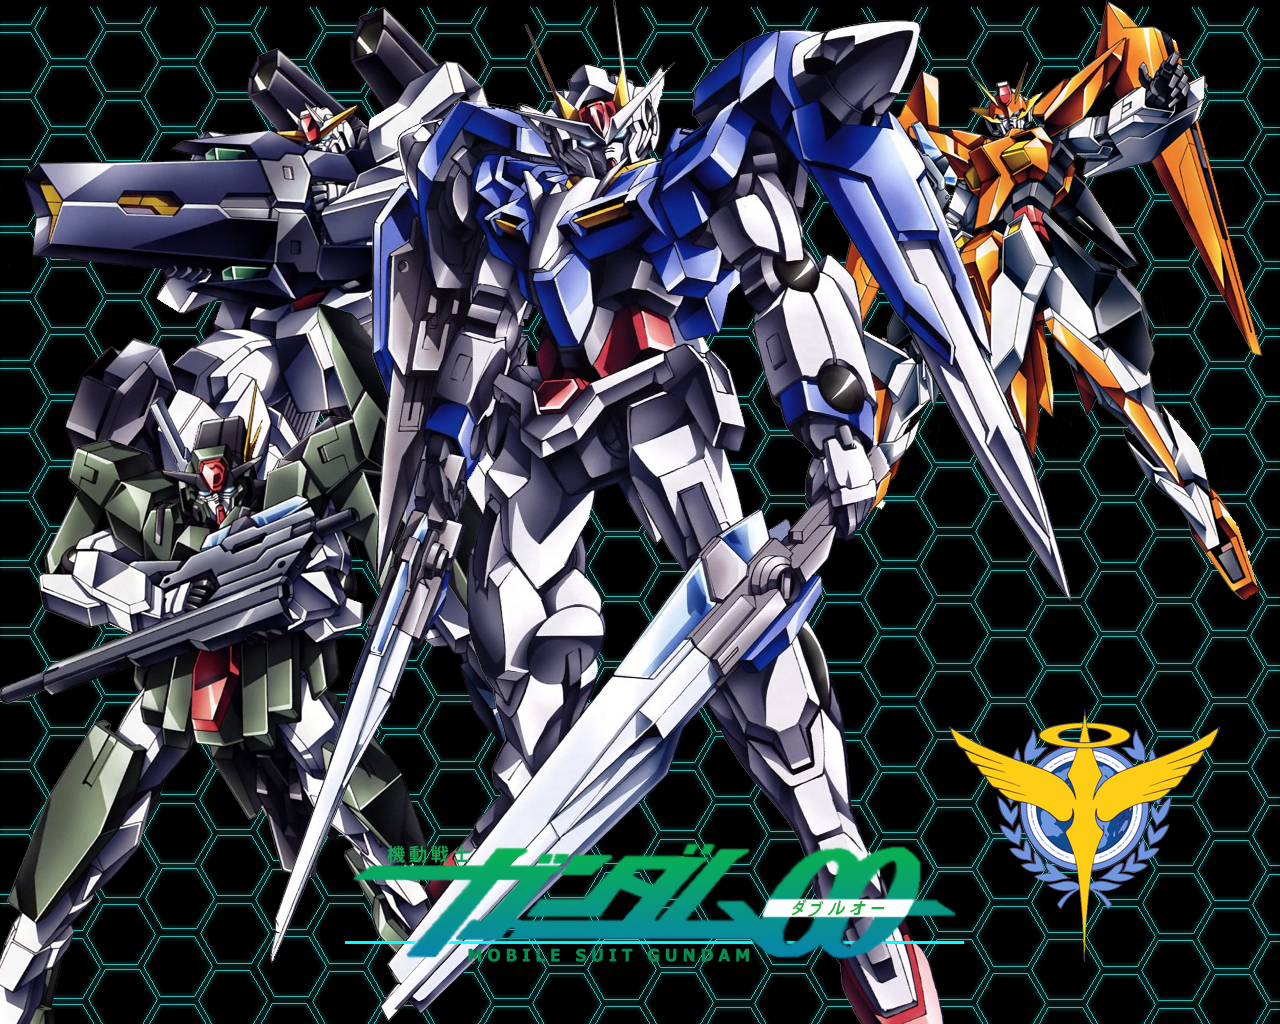 Gundam 00 Season 2 Wallpaper by shinigami117 on DeviantArt